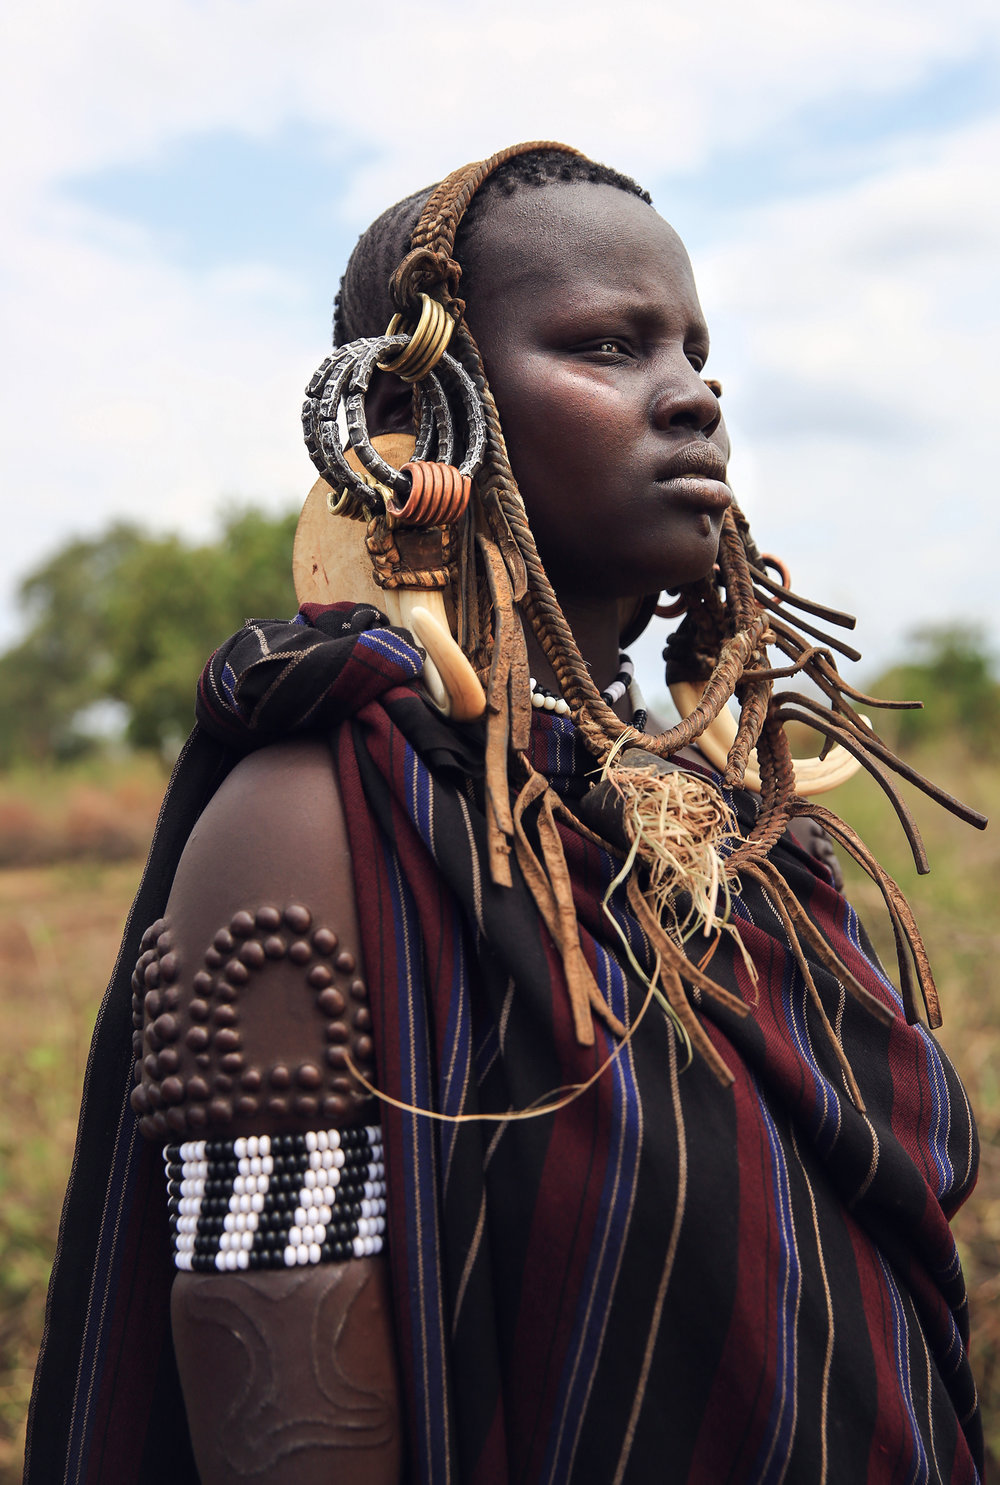 The sign of beauty among Mursi women are large lip plates and scarification, sported by almost all of the adult women. When a Mun (as they call themselves) becomes engaged to be married, usually around 14 or 15, she disappears from village life to live in her family hut. The gap between her front lip and the flesh below is pierced and gradually stretched. In the beginning a hole is made in the lip with a wooden stick. The stretching continues as successively bigger discs of clay or wood are accommodated by the changed lip. Generally the two lower front teeth are pulled or knocked out to aid in the process. The final size of the plate helps to determine her beauty & bride price.